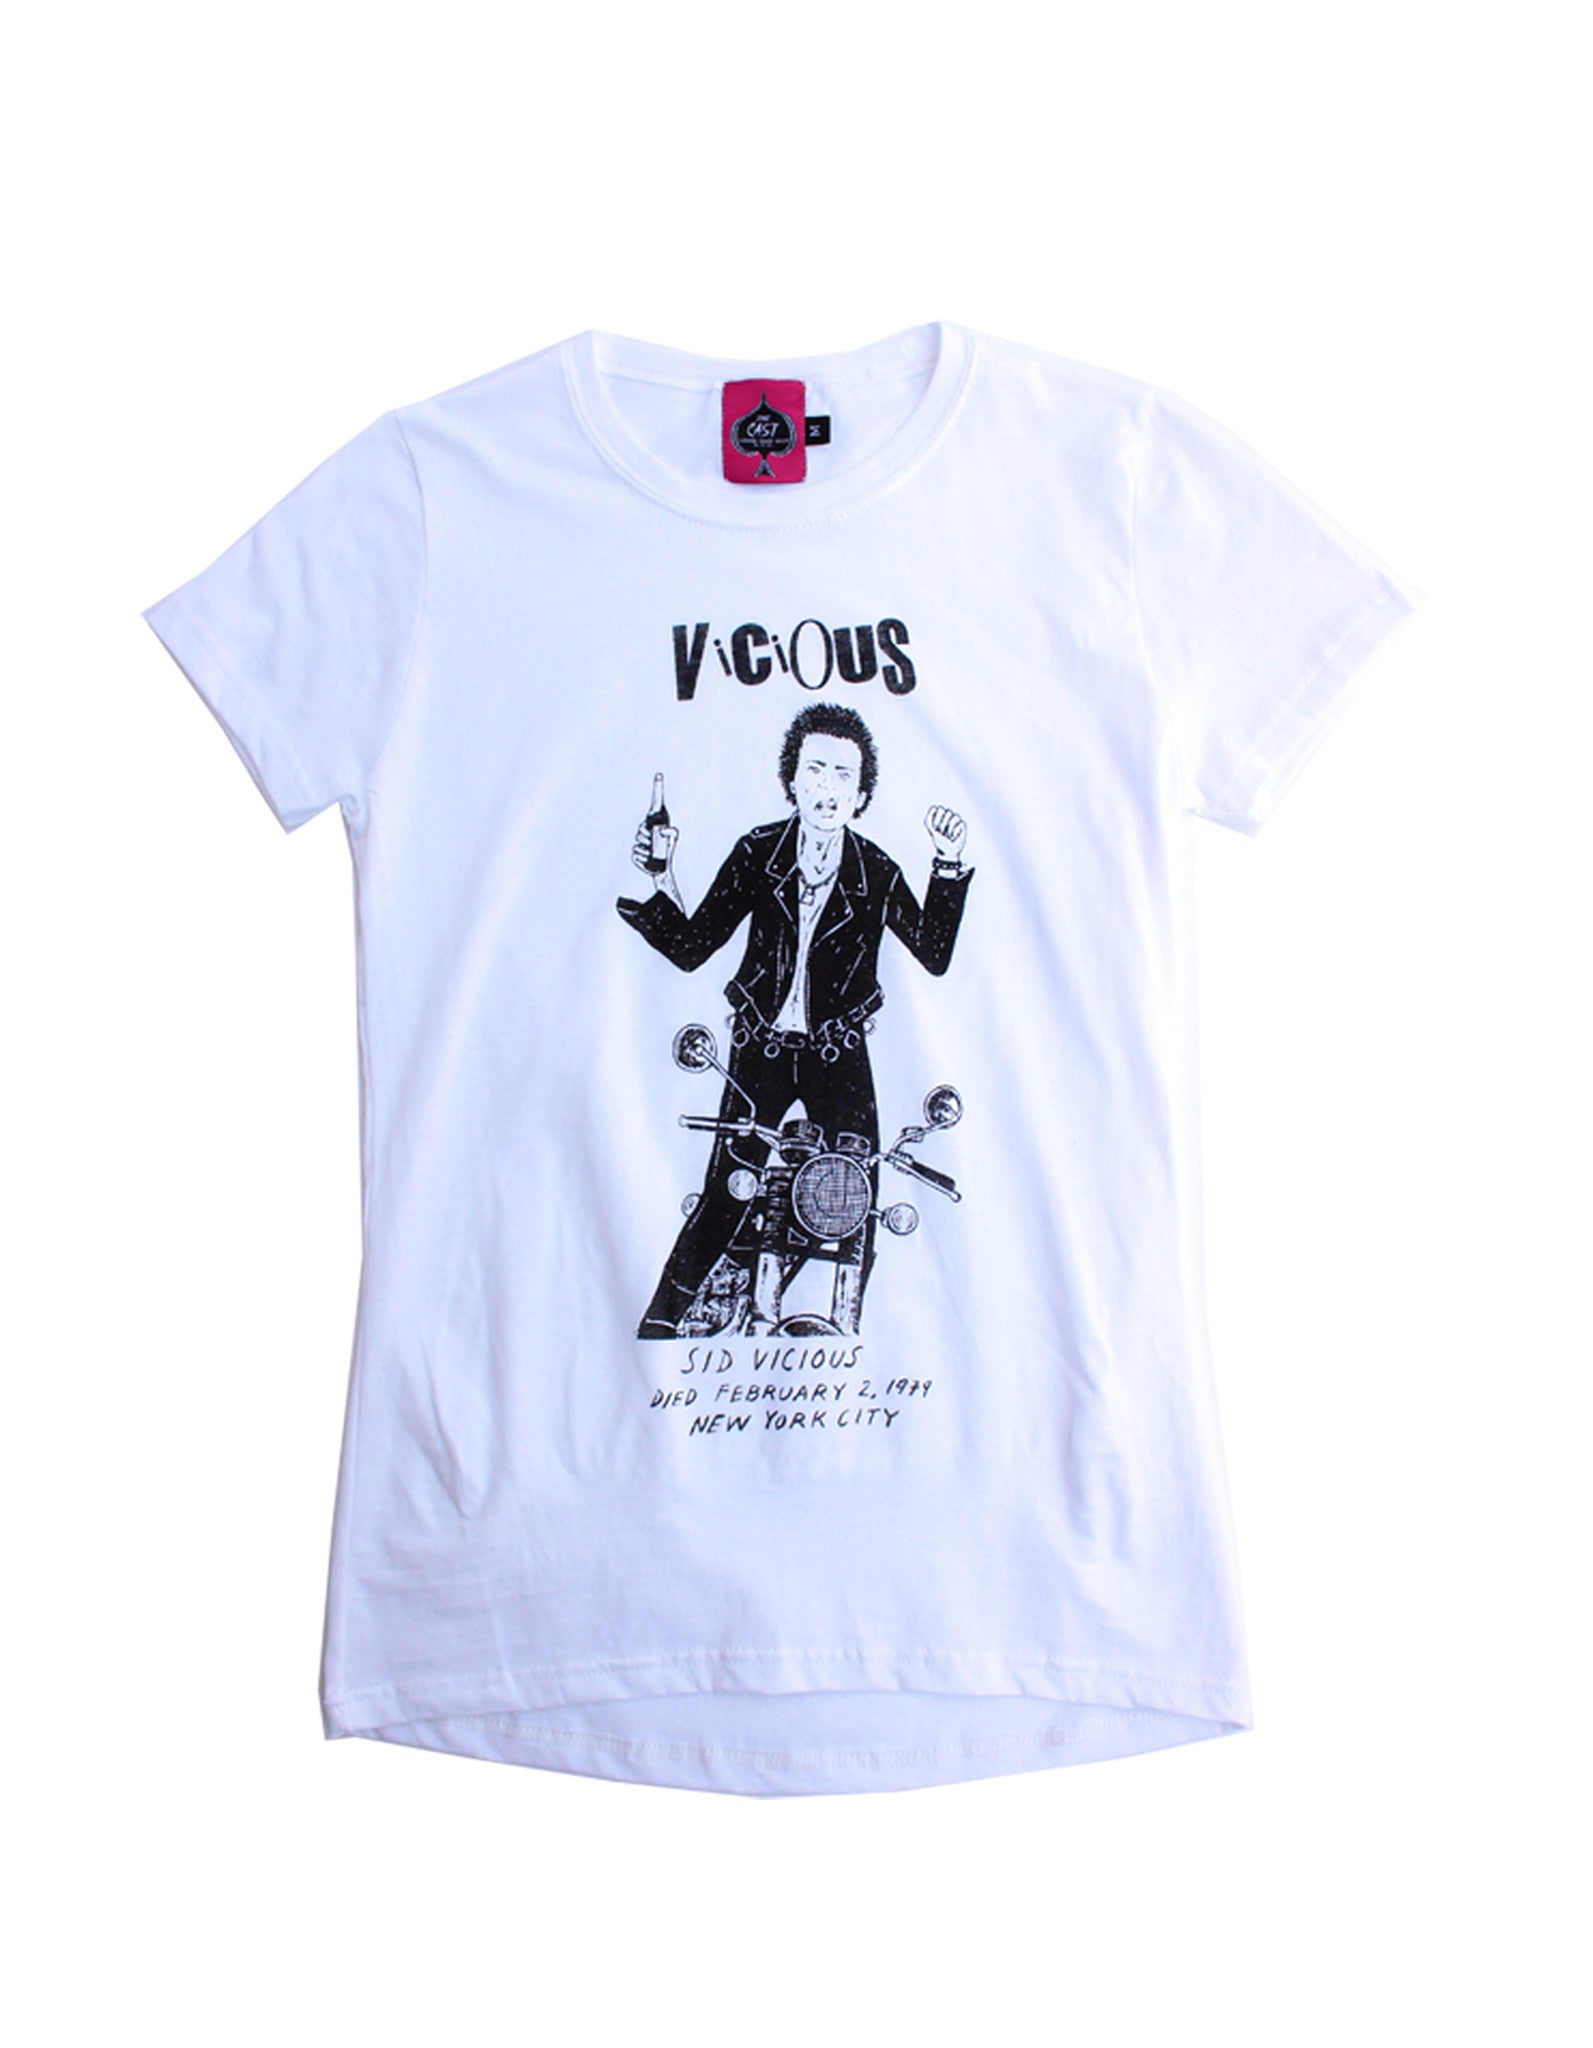 Vicious - Sid Vicious (WOMEN'S CUT)